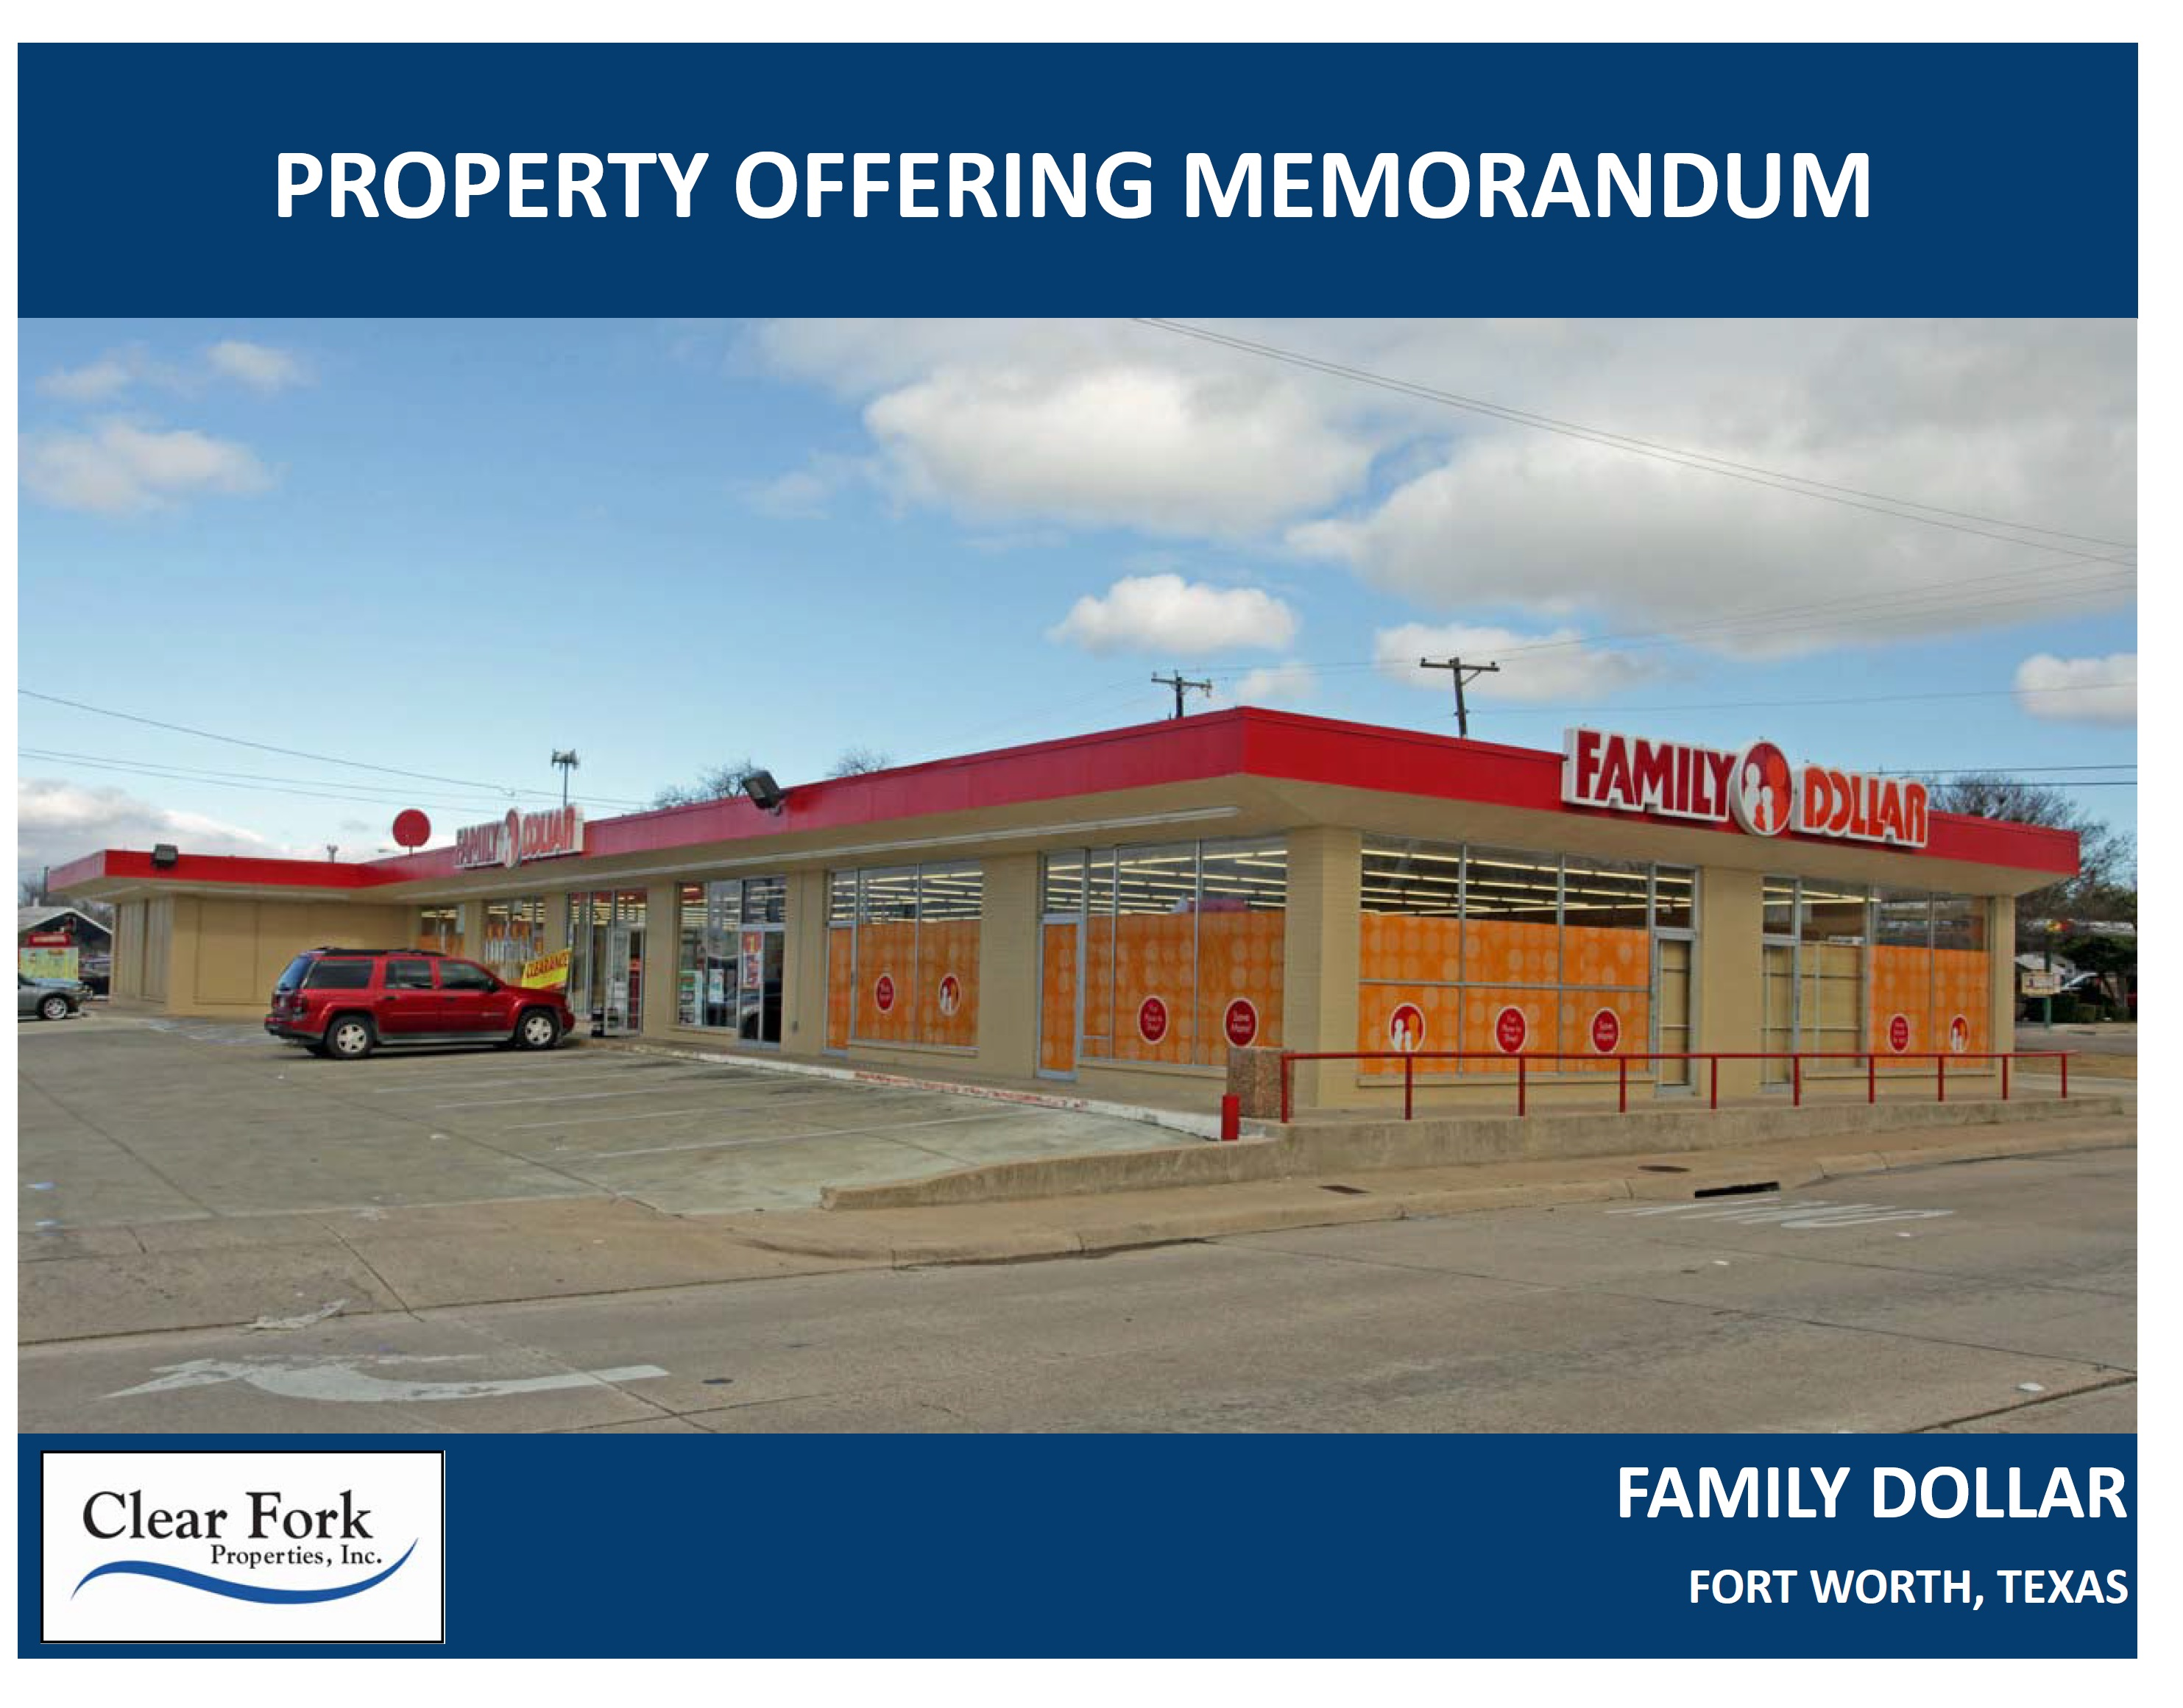 Family Dollar Property